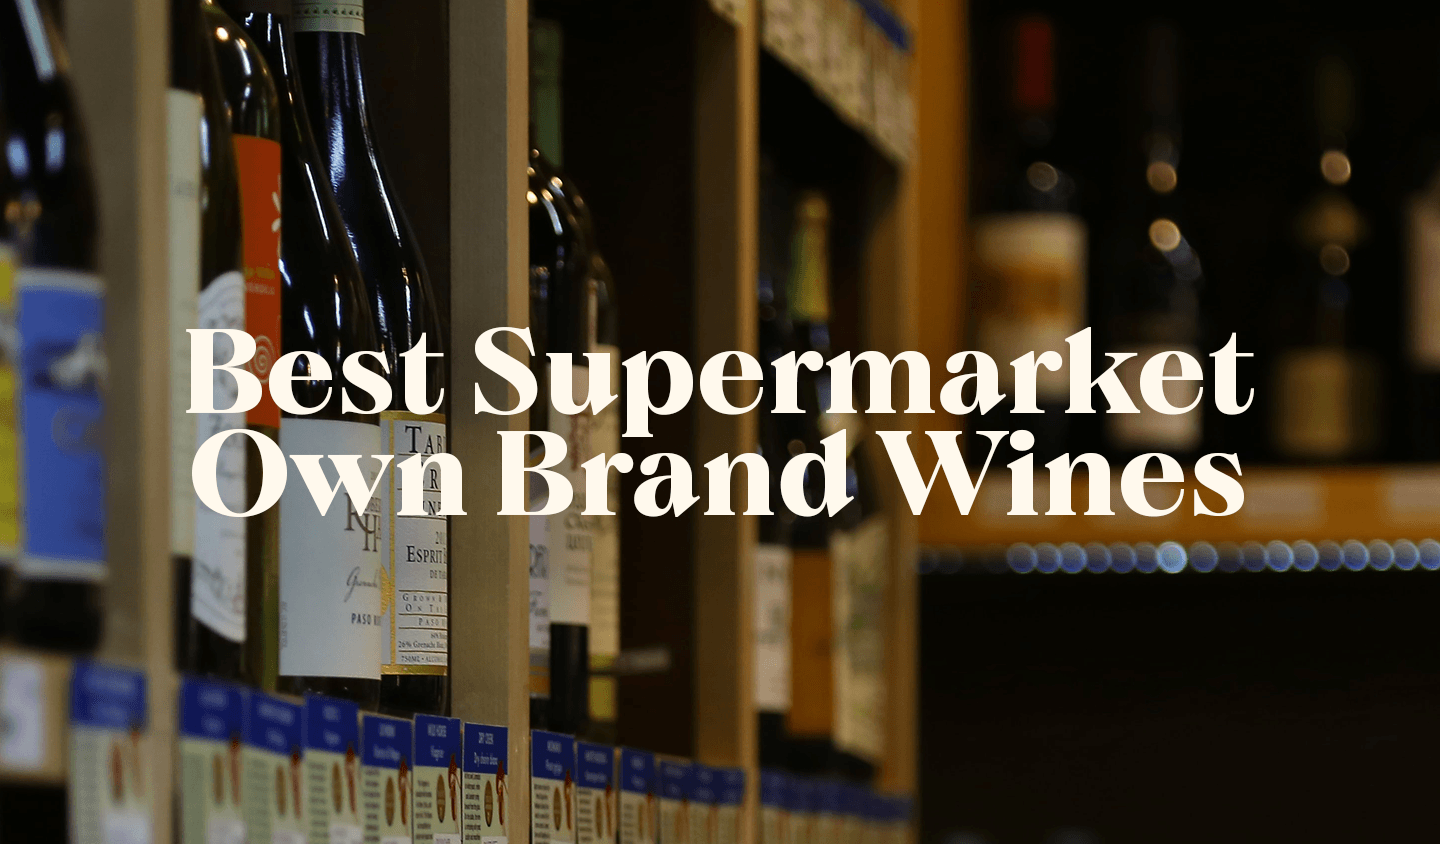 What are the best wines from the supermarket?